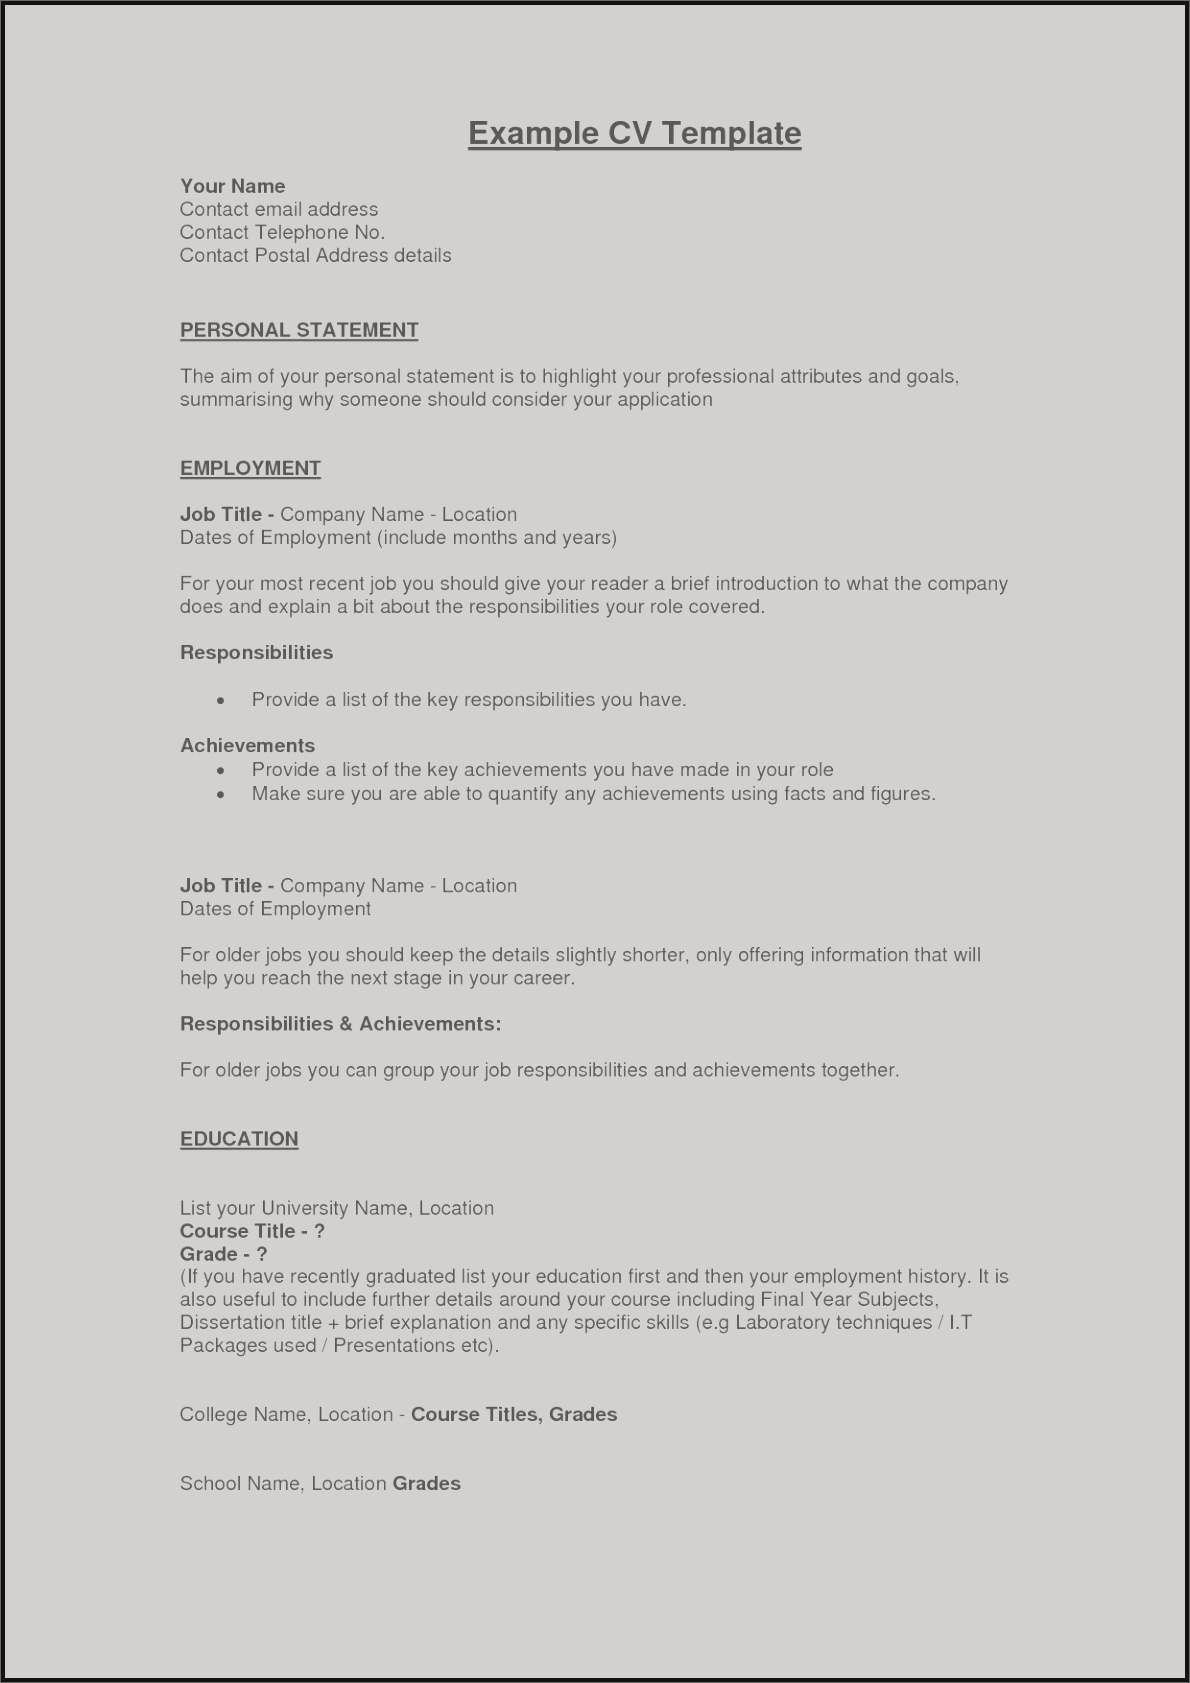 resume template for business analyst example-Example Business Analyst Resume Best Example Perfect Resume Fresh Examples Resumes Ecologist Resume 0d 7-f